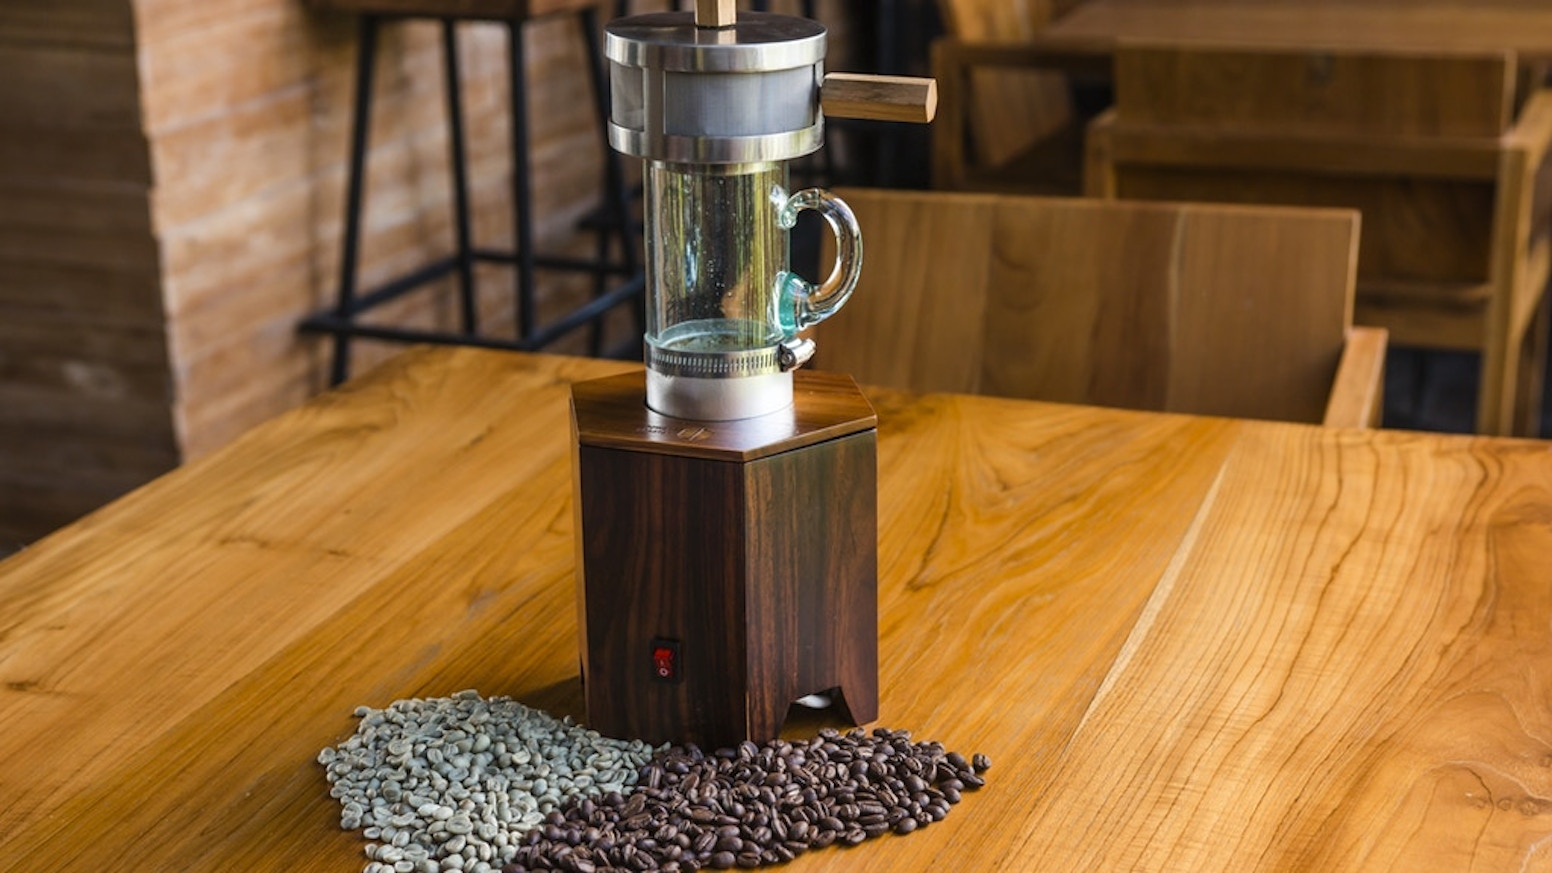 Roast coffee in your own home with our Power Roaster - Experience the amazing kick of fresh roasted coffee: it will energize your mind!